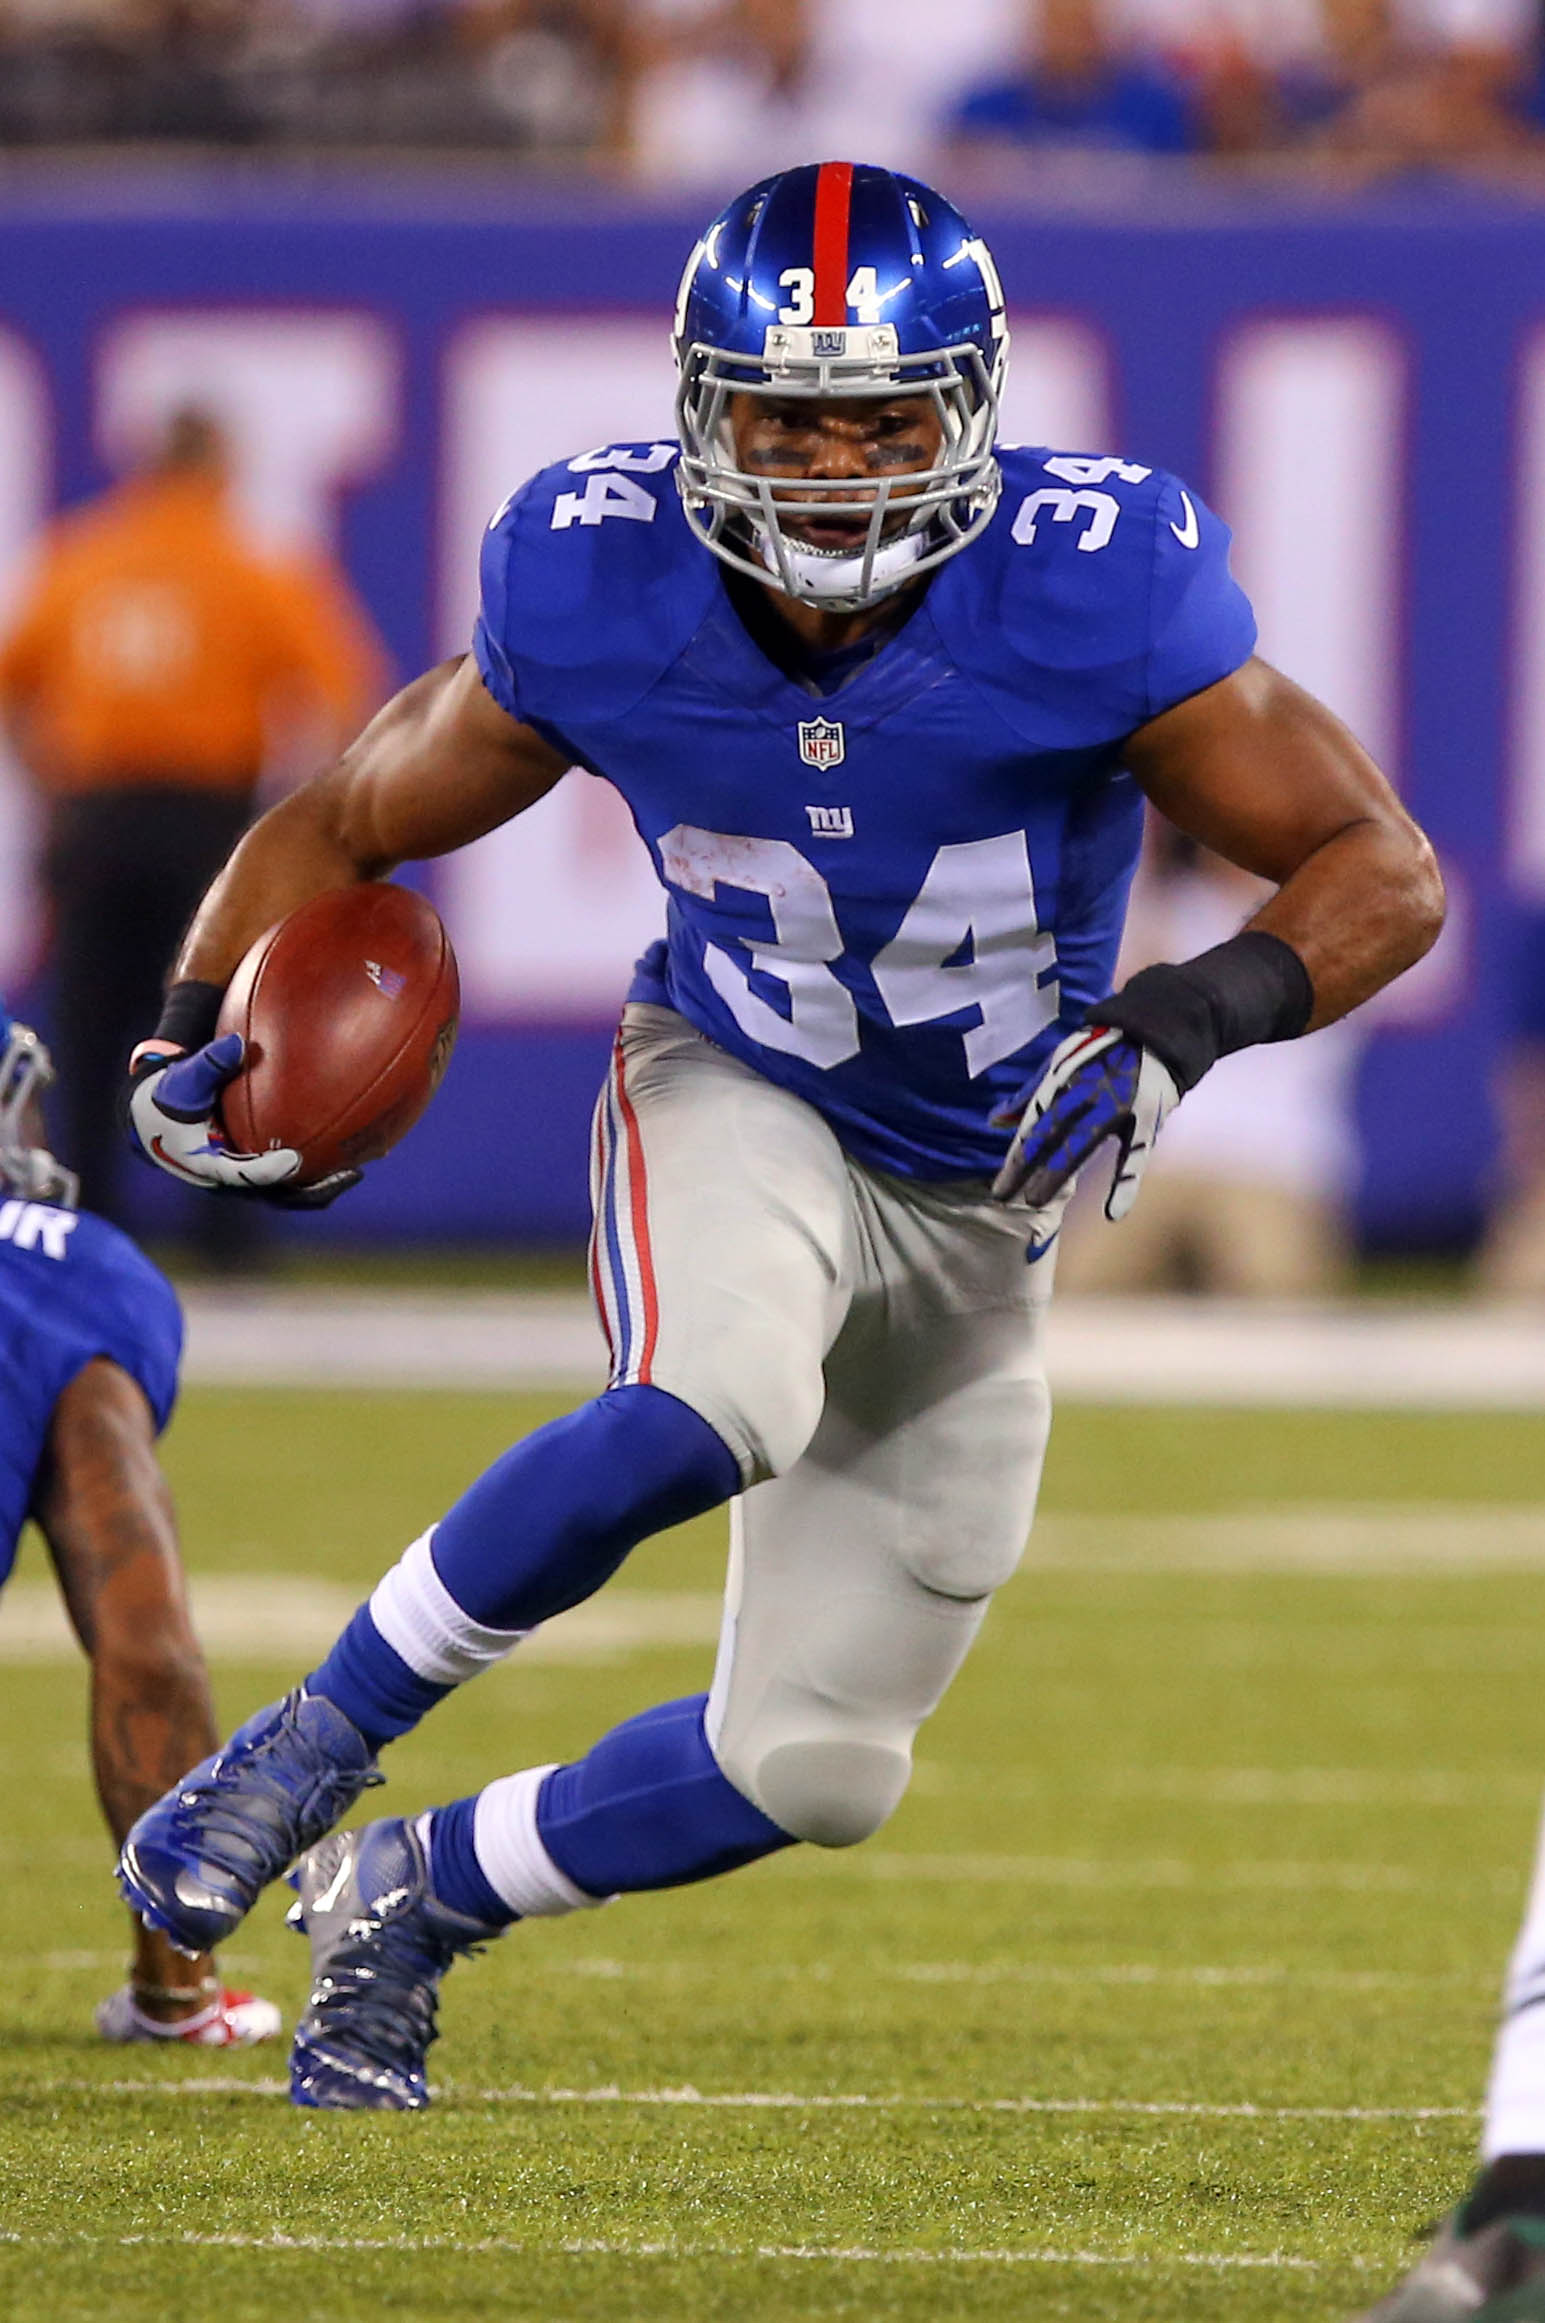 Shane Vereen could be a key weapon Sunday for the Giants